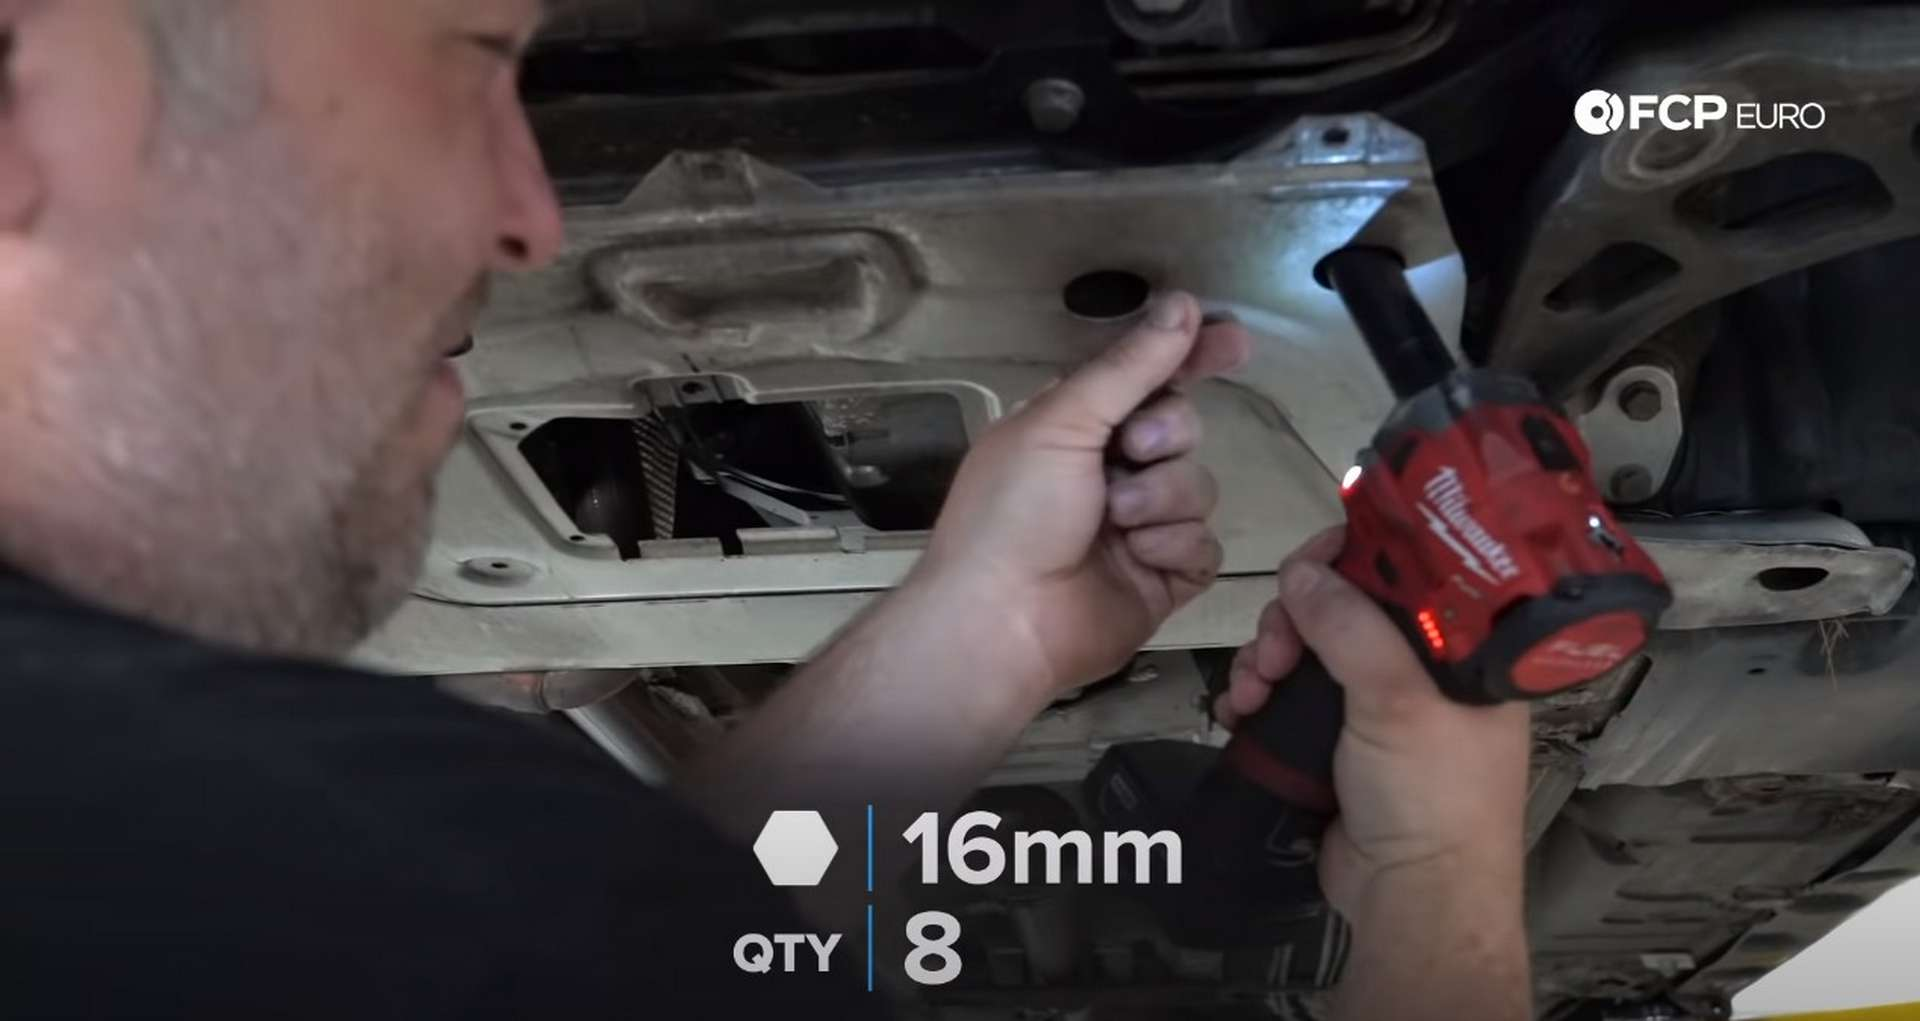 DIY BMW E46 Clutch Replacement removing the subframe reinforcement plate